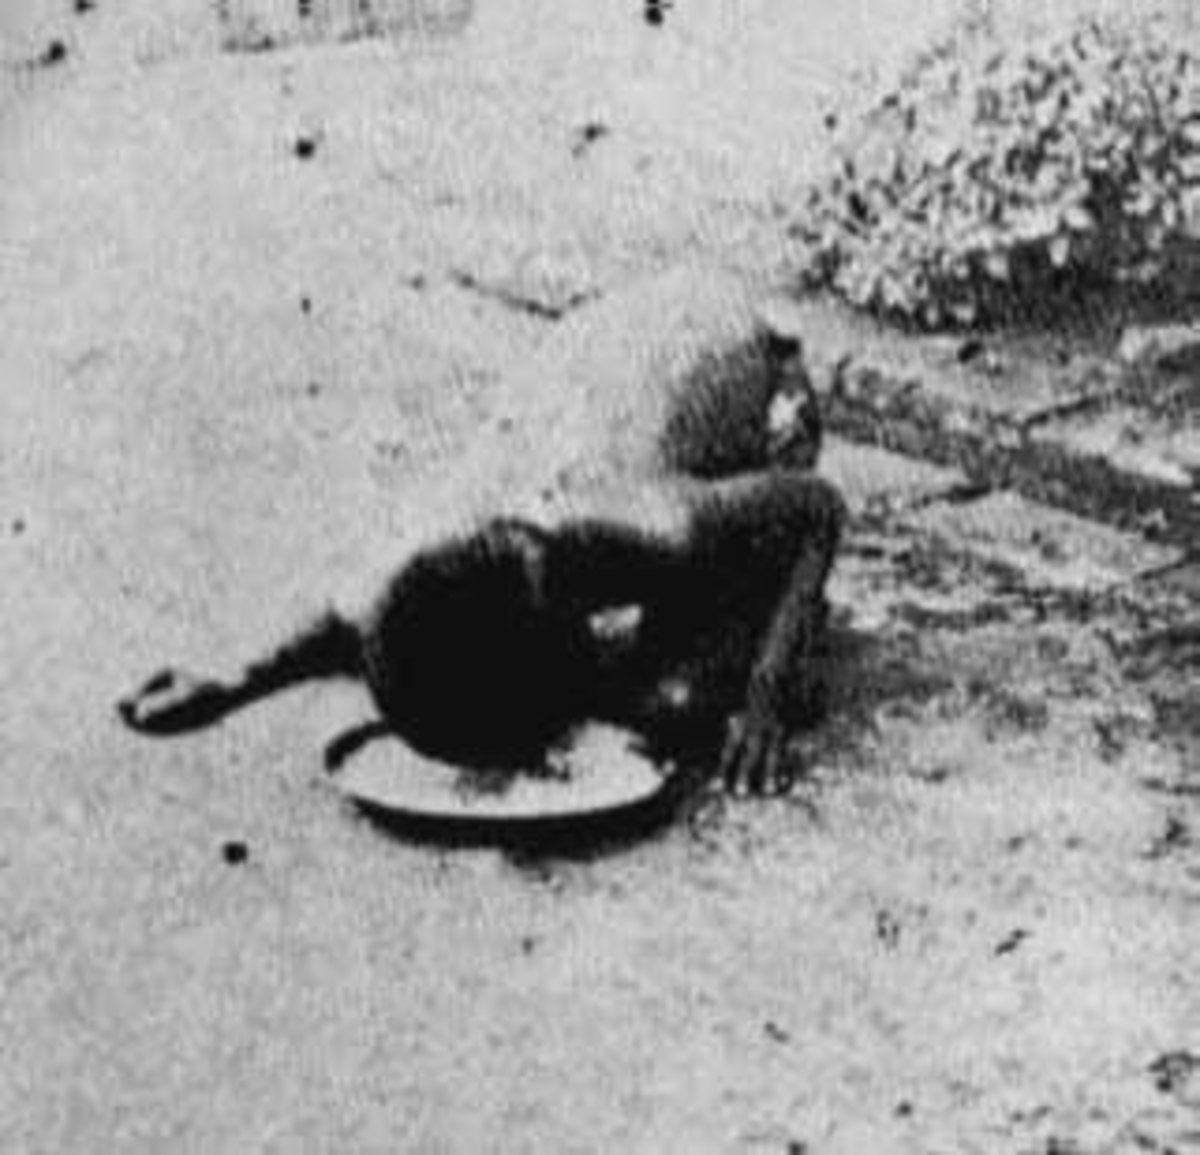 This grainy image purportedly shows Kamala eating from a bowl on the ground.